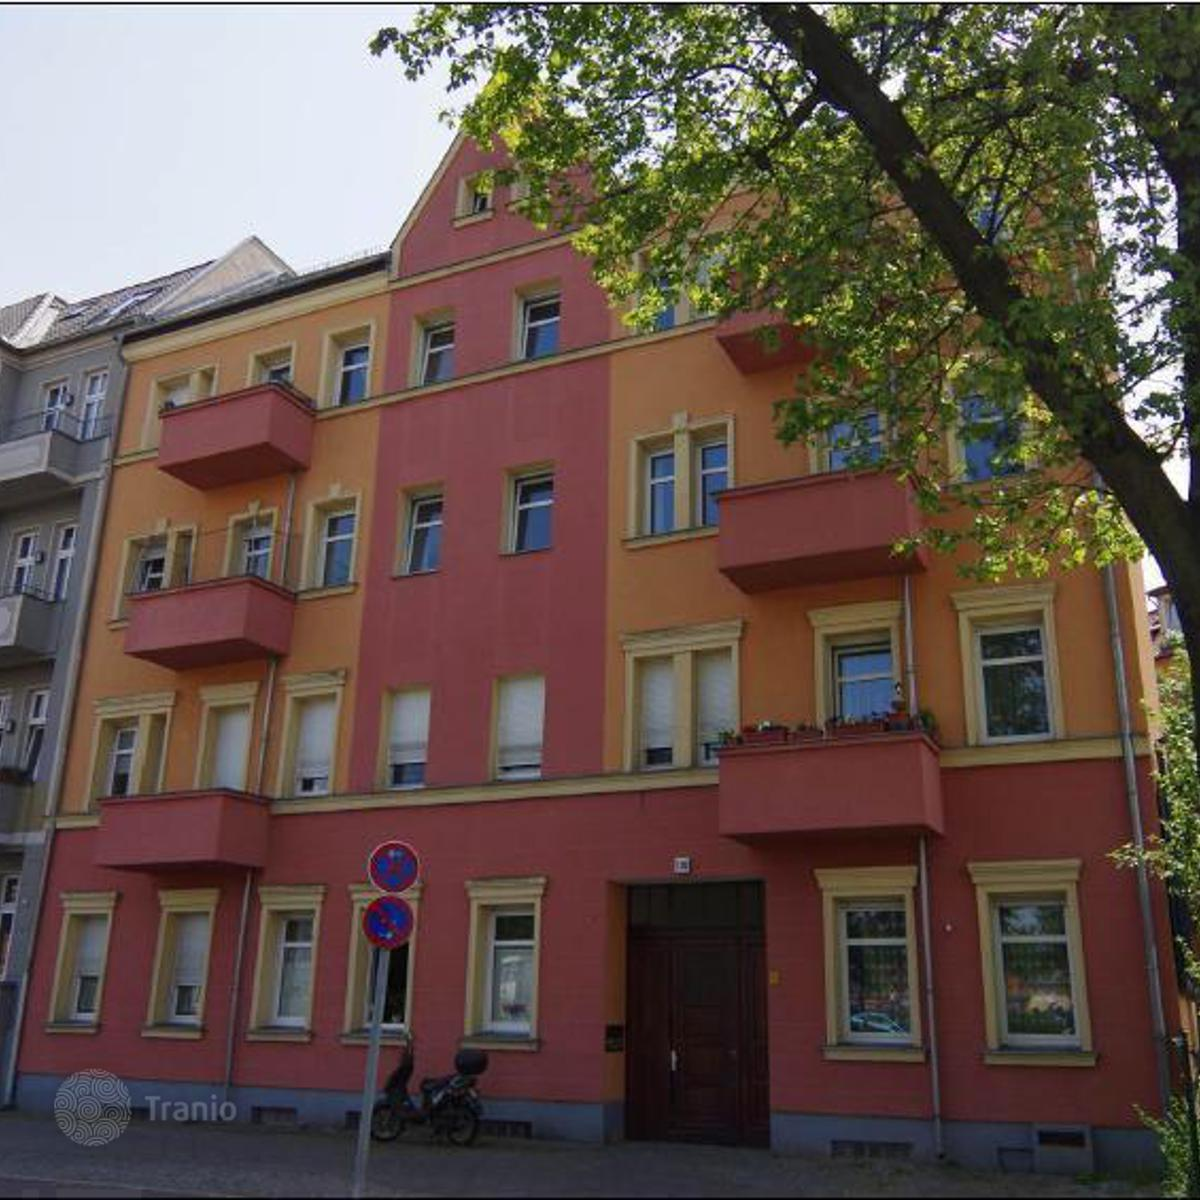 Listing #1338653 in Berlin, Germany — Apartment building ...